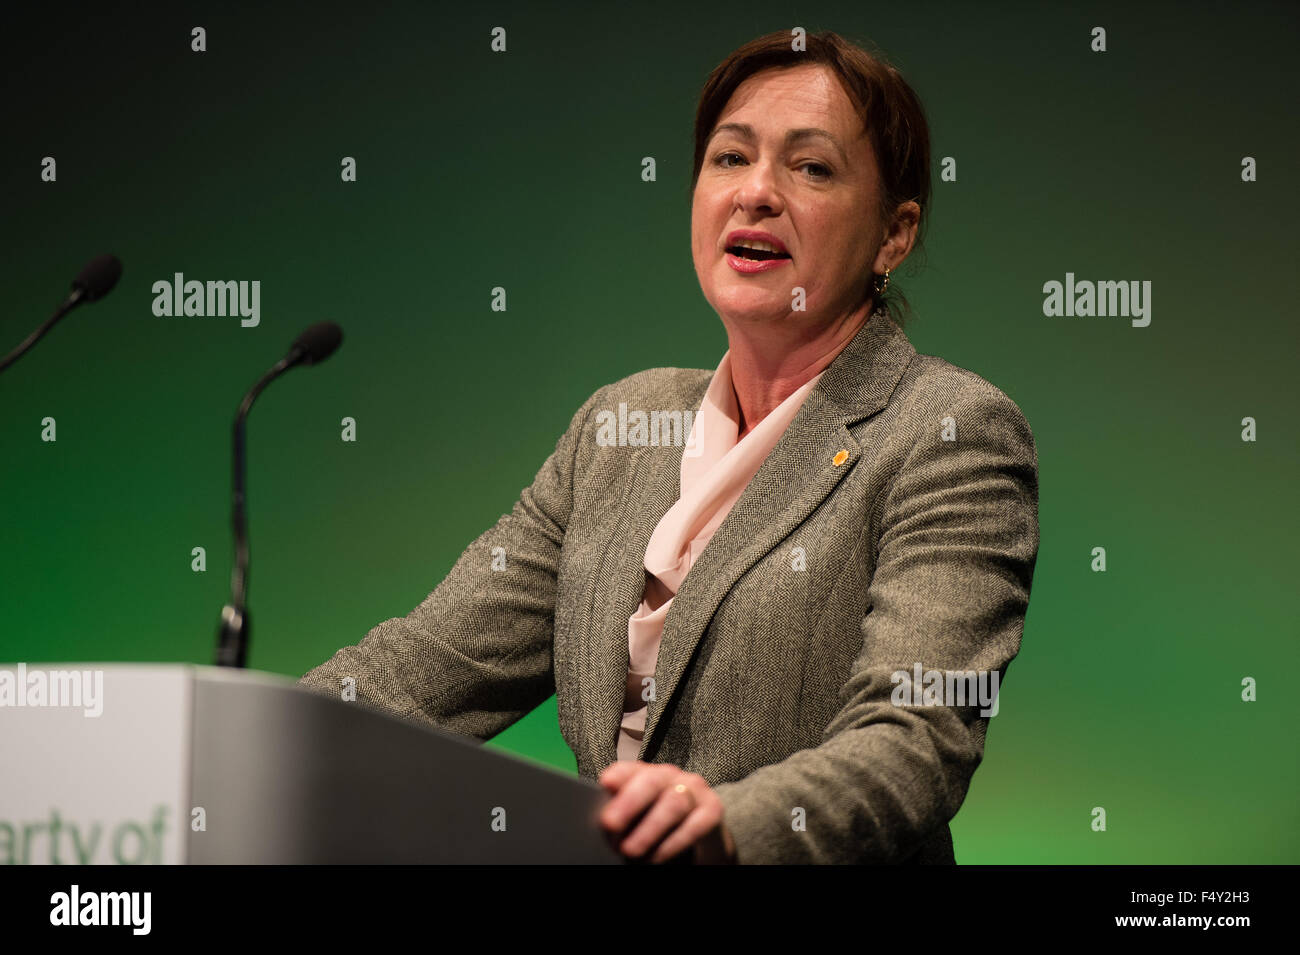 Aberystwyth Wales UK, Saturday 24 October 2015 UK Politics: LIZ SAVILLE ROBERTS MP speaking at the Plaid Cymru 2015 - Stock Image